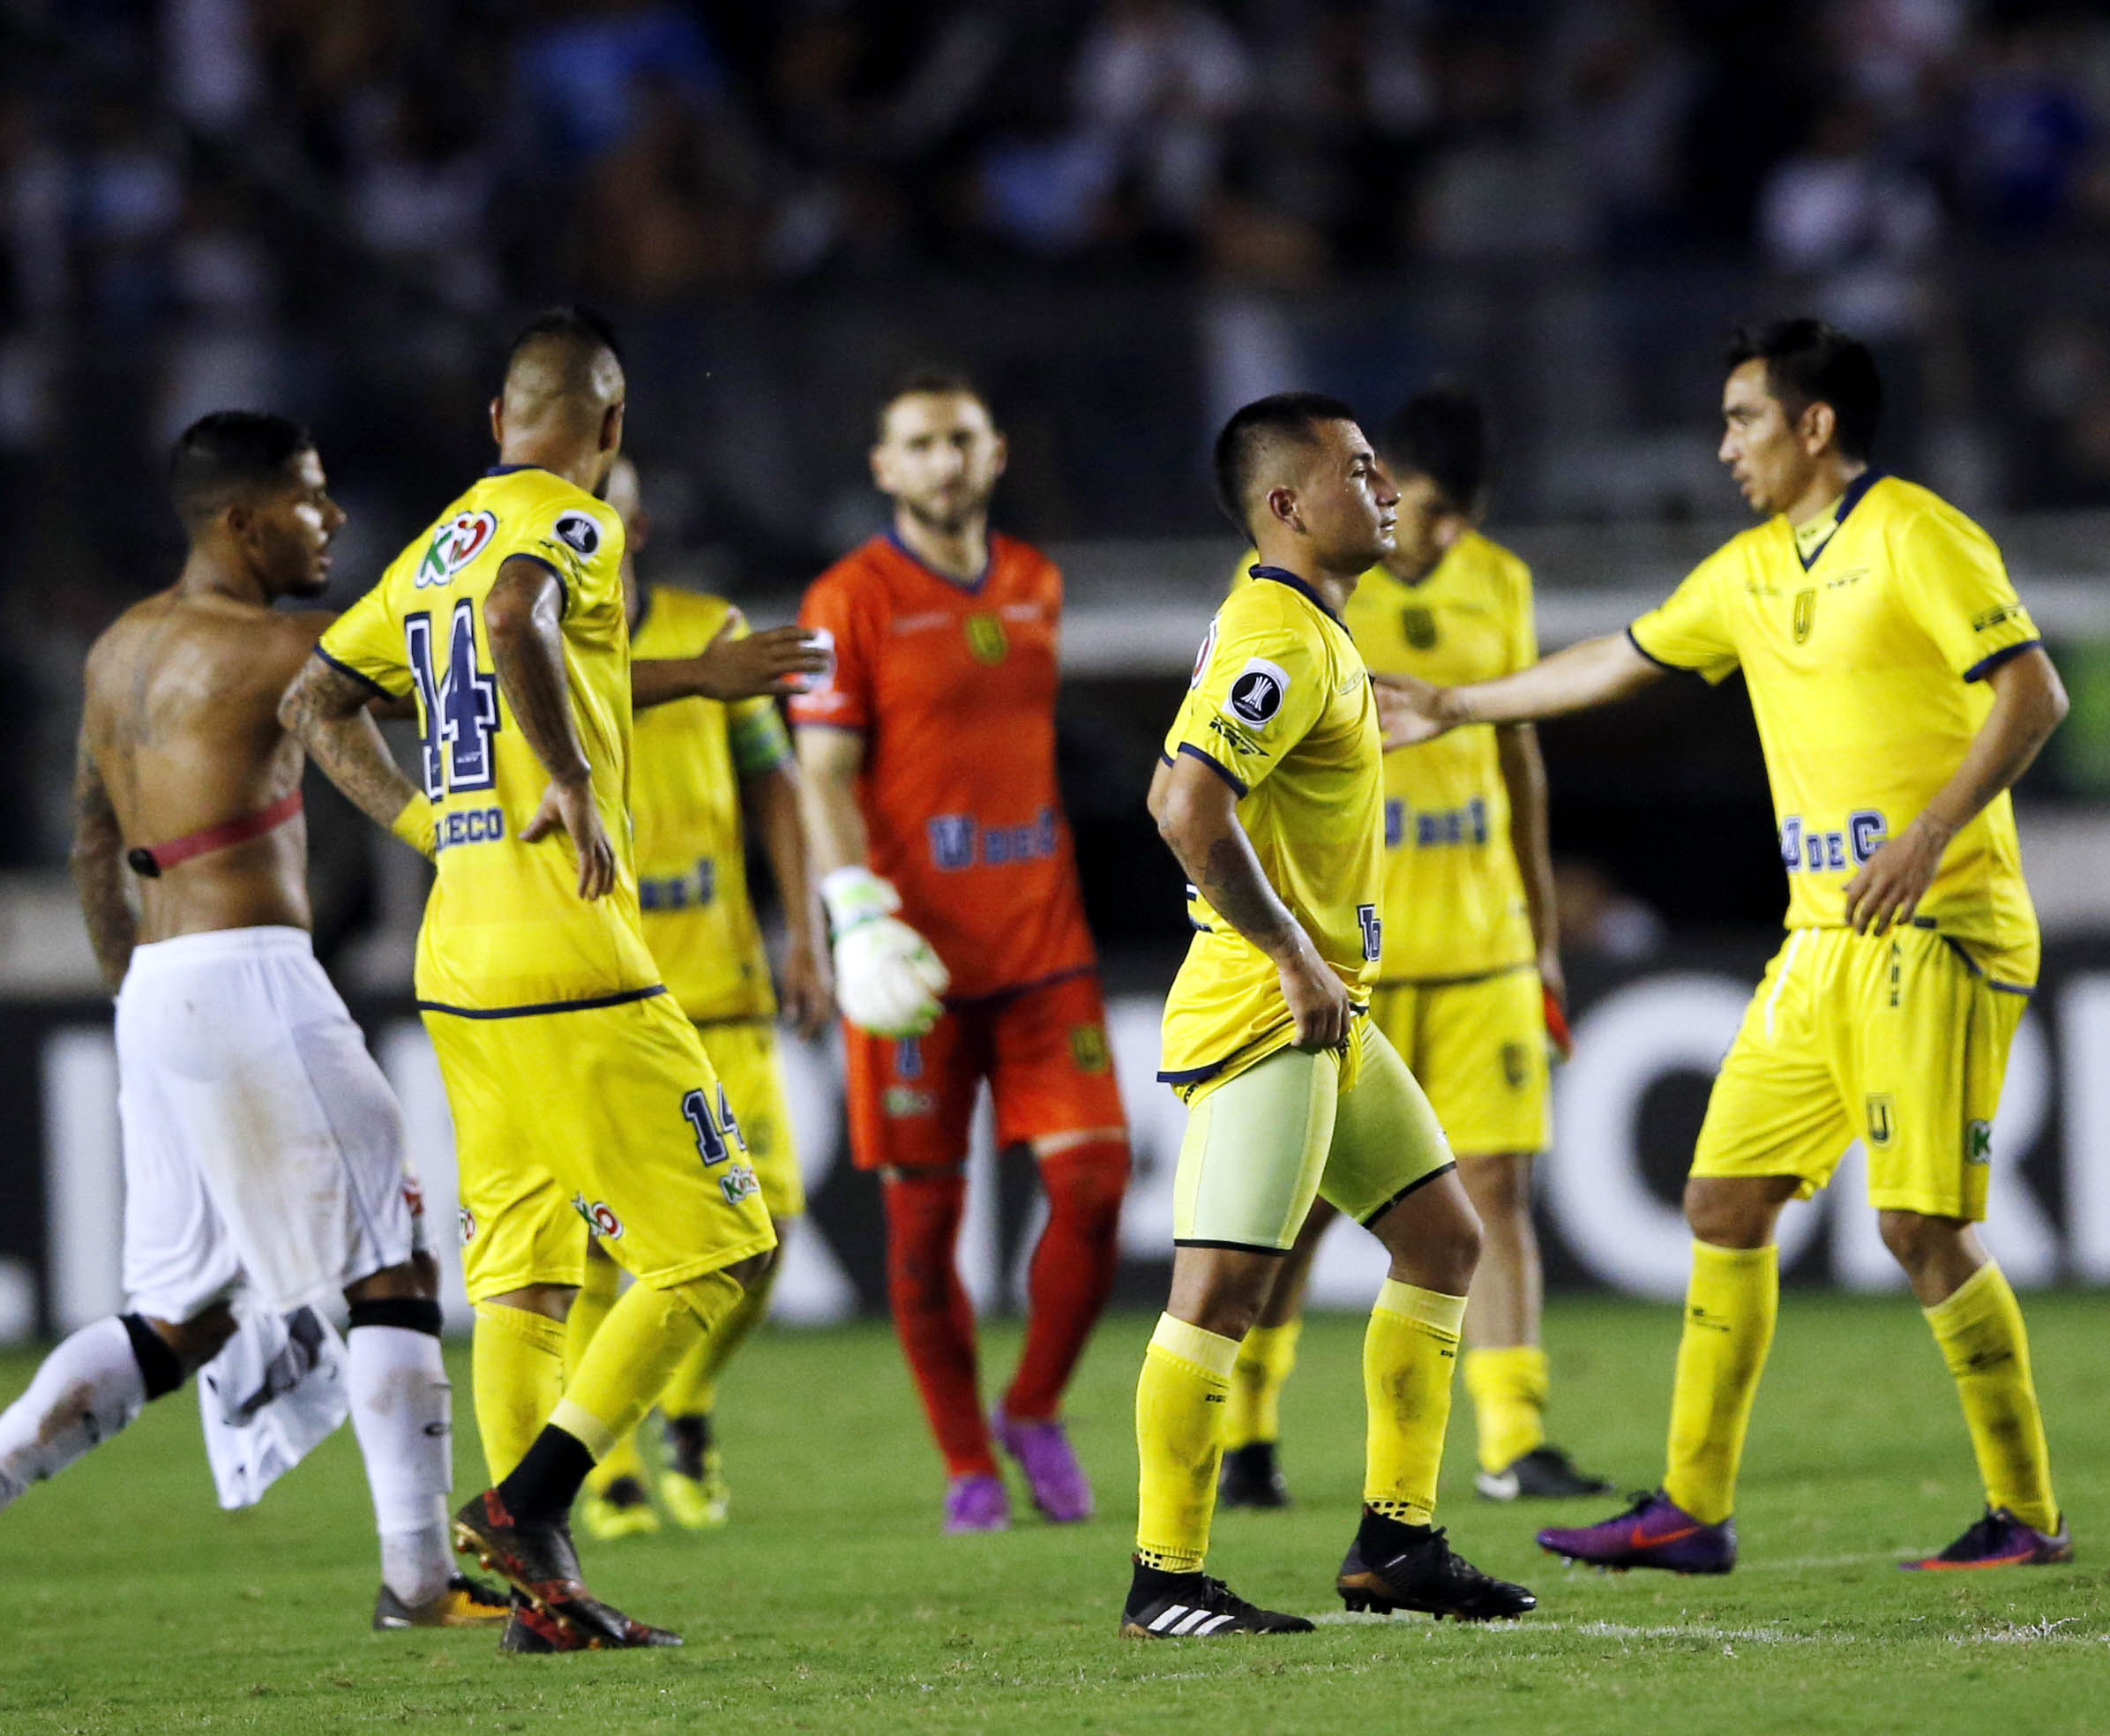 Chile's Universidad Concepcion players leave the field after losing to Brazil's Vasco da Gama during a Copa Libertadores soccer match in Rio de Janeiro, Brazil on Wednesday. Vasco da Gama won 2-0.